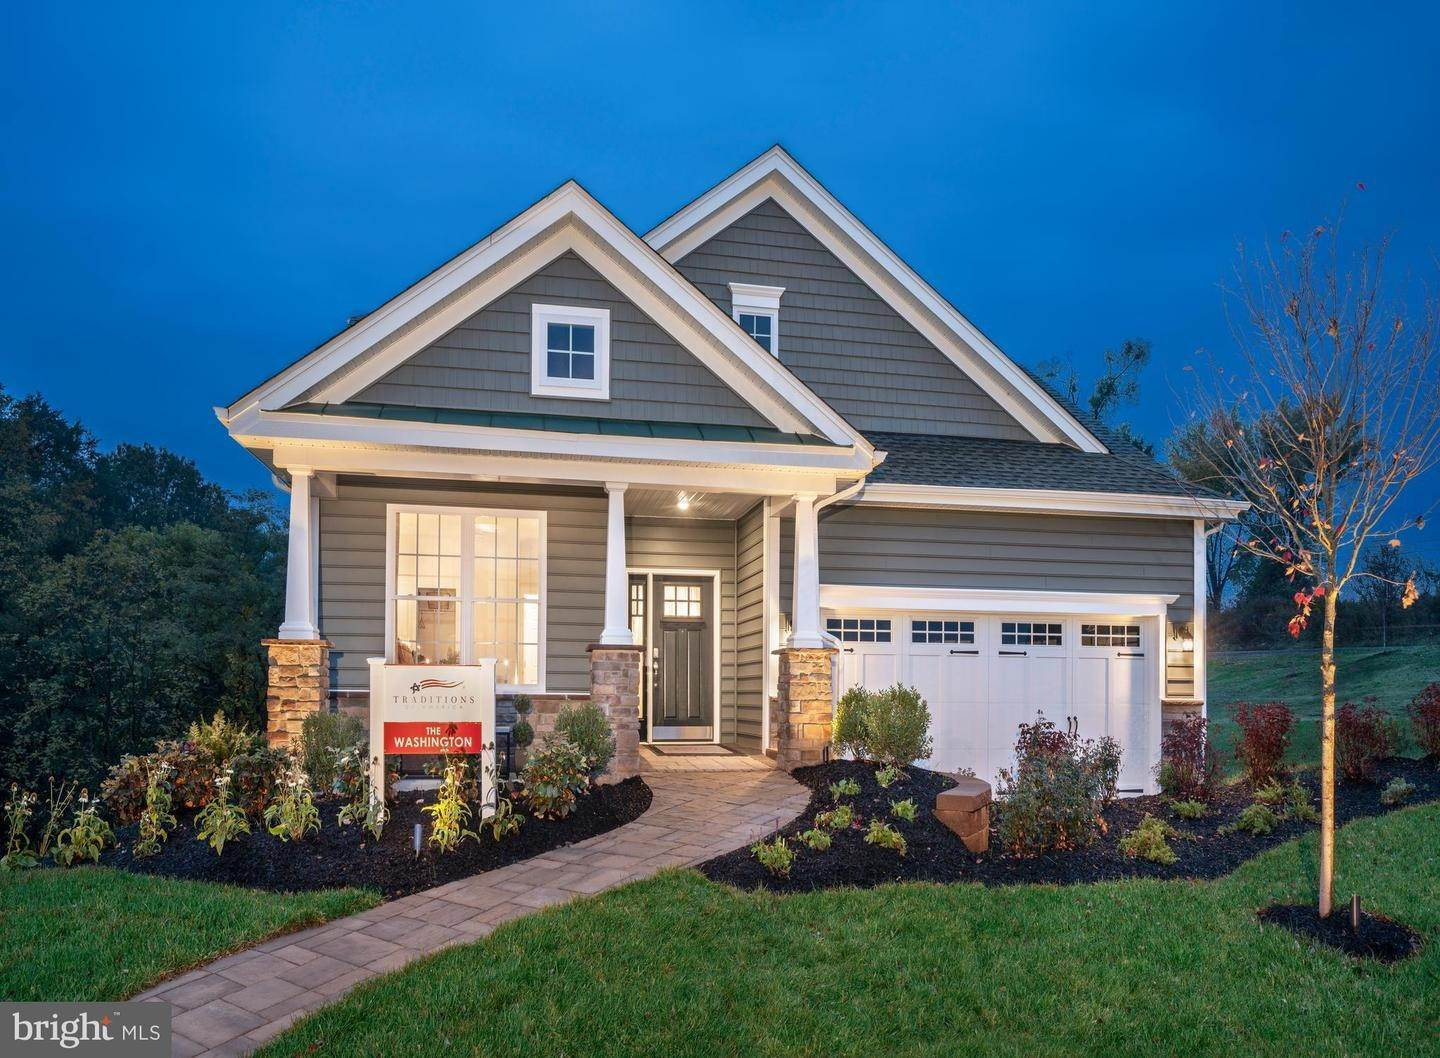 Residential for Sale at 820 FOUNDERS WAY #WASHINGTON MODEL East Petersburg, Pennsylvania 17520 United States